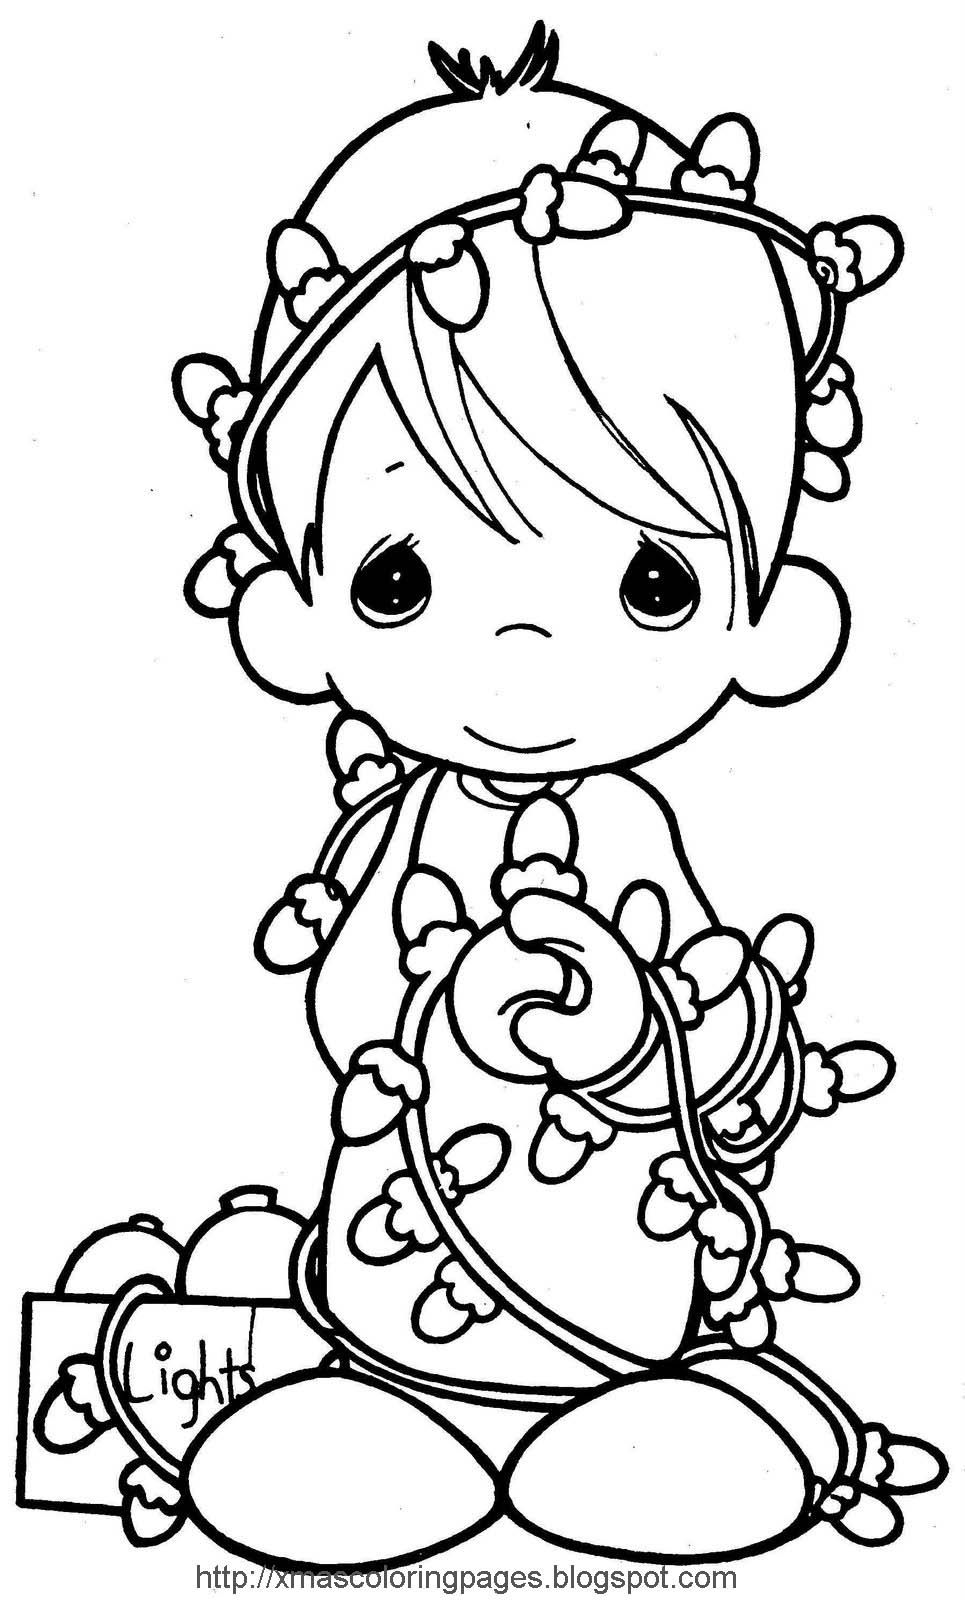 Xmas Coloring Pages To Print With Site Hundreds Of Free Printable Here